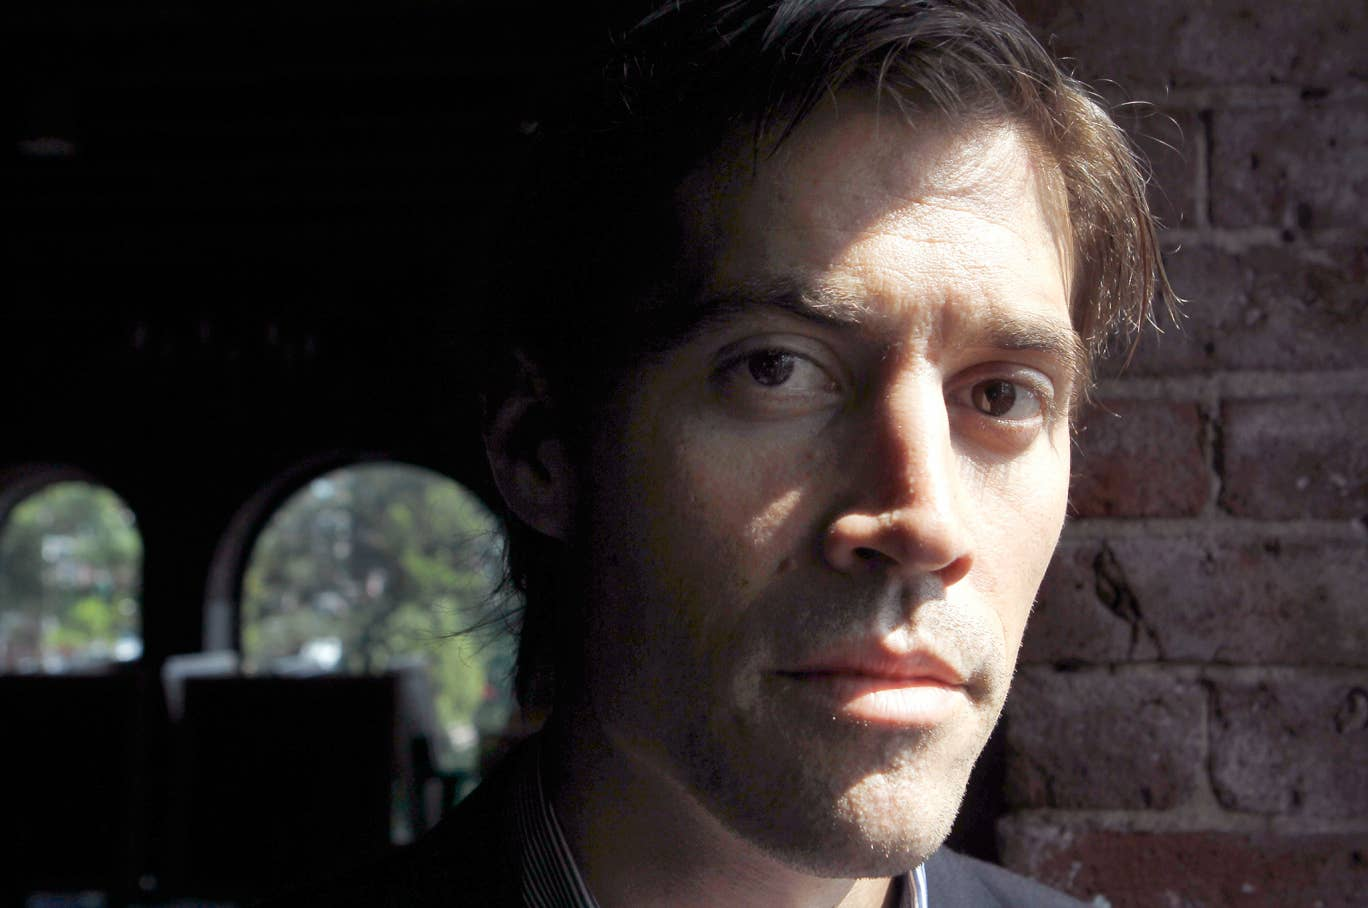 James Foley responds to questions during an interview with The Associated Press, in Boston